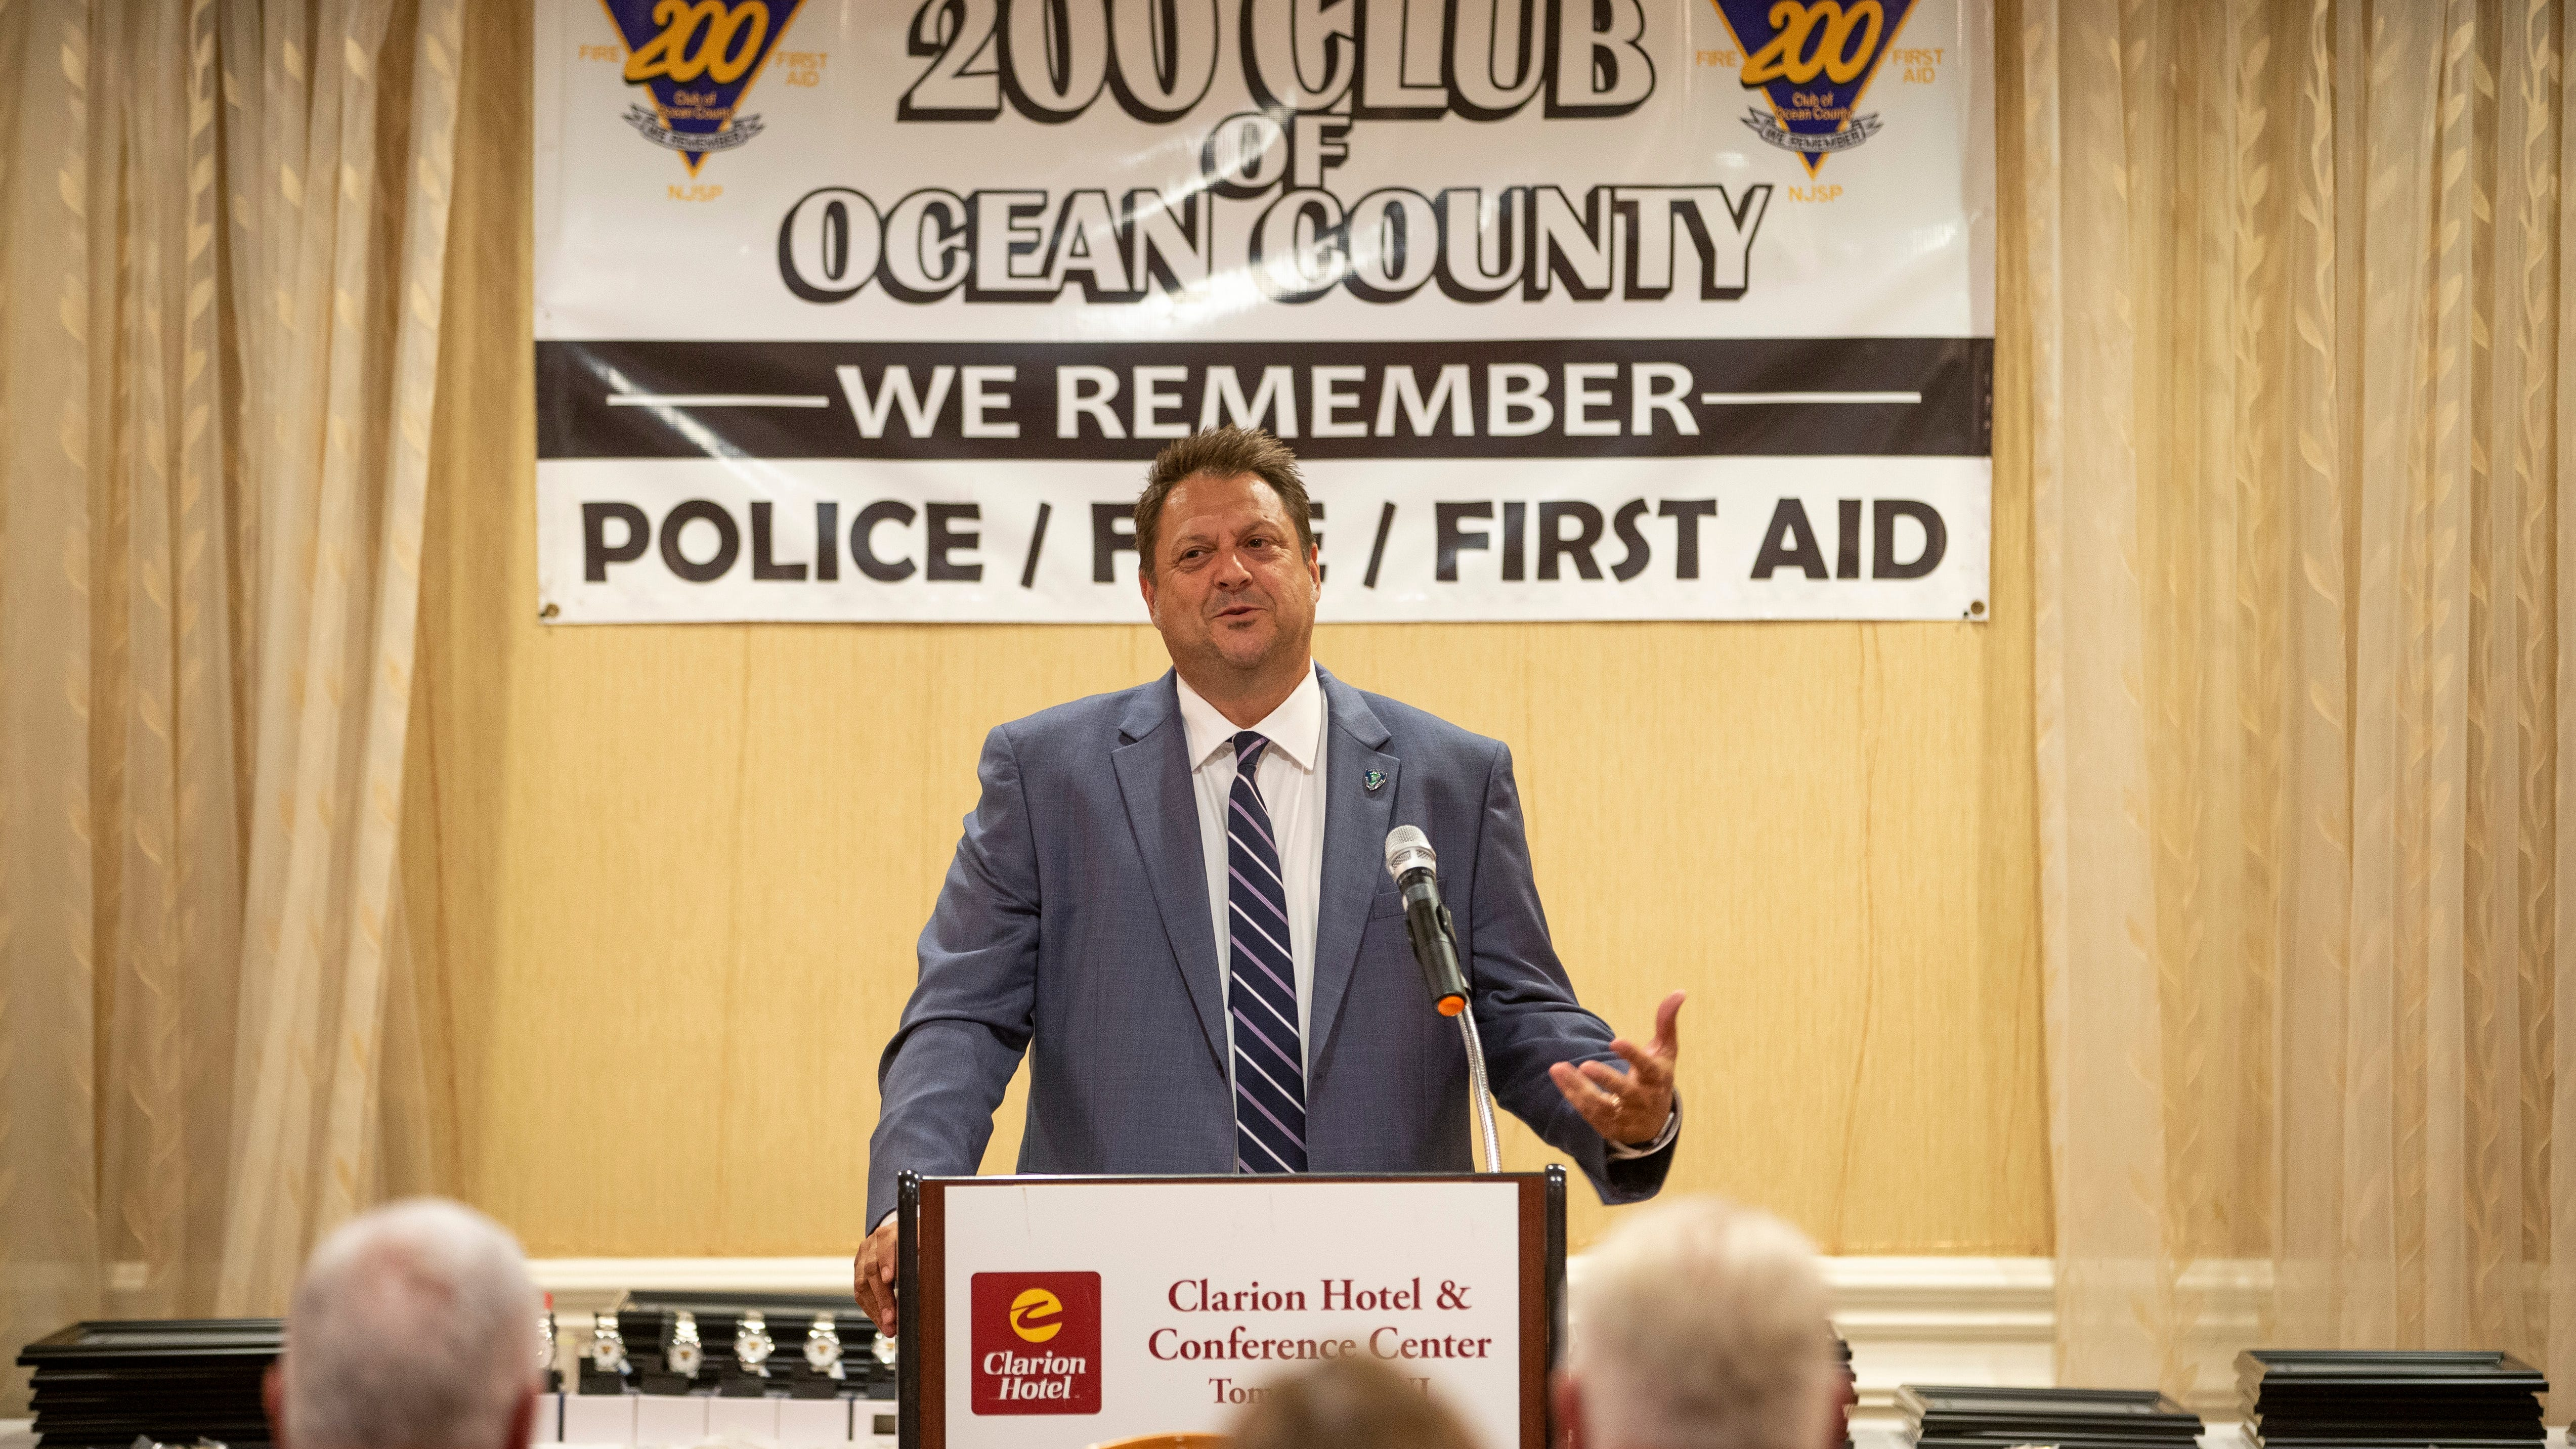 Ocean County NJ police, firefighters, EMTs and lifeguards honored